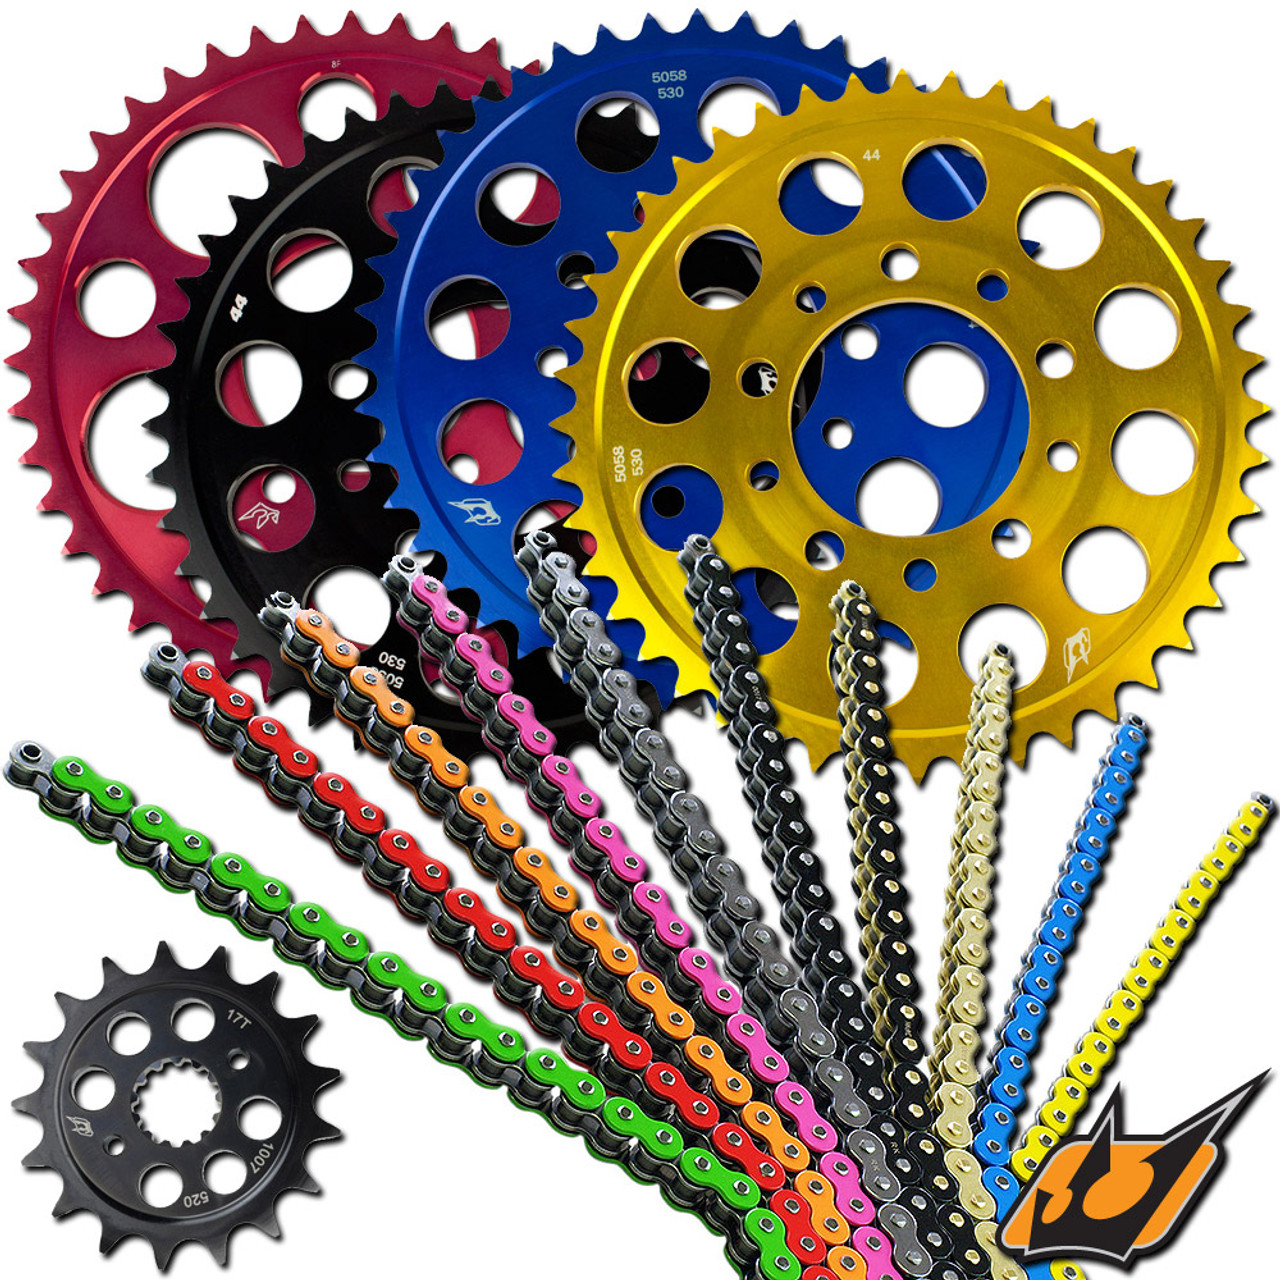 13-15 DID Upgrade Chain And Sprocket Kit BMW S1000RR HP4 520 Race Tool